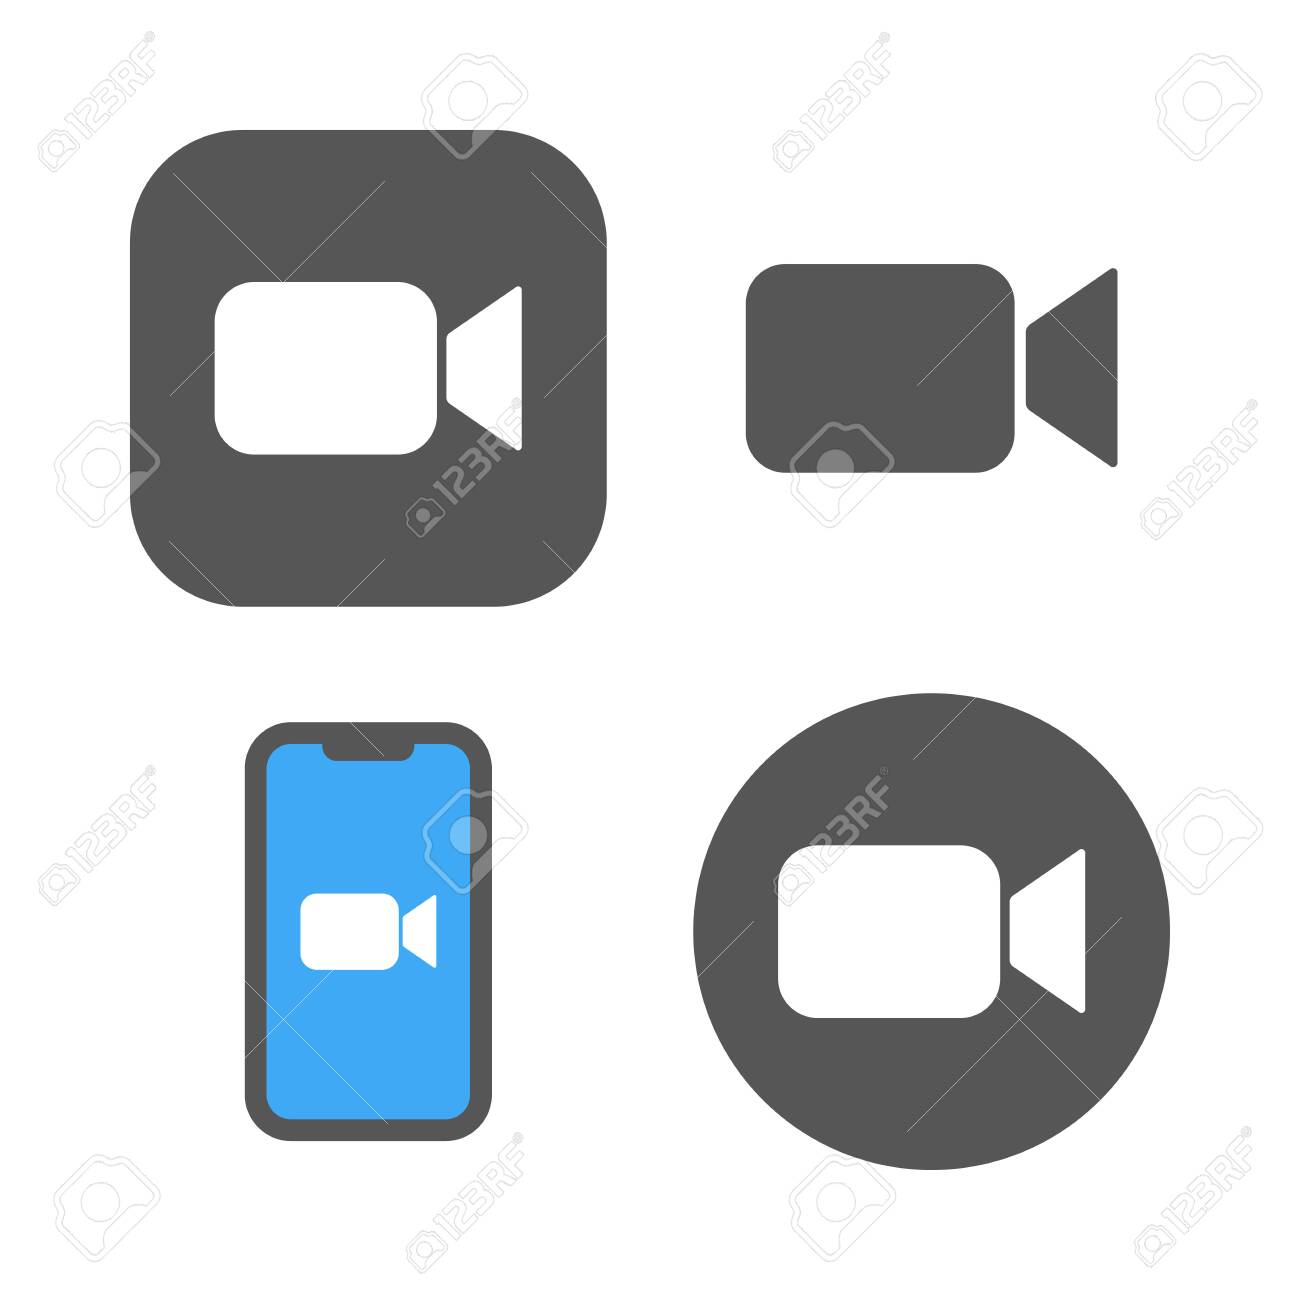 Camera icons - Live media streaming application, conference video calls. - 147130324